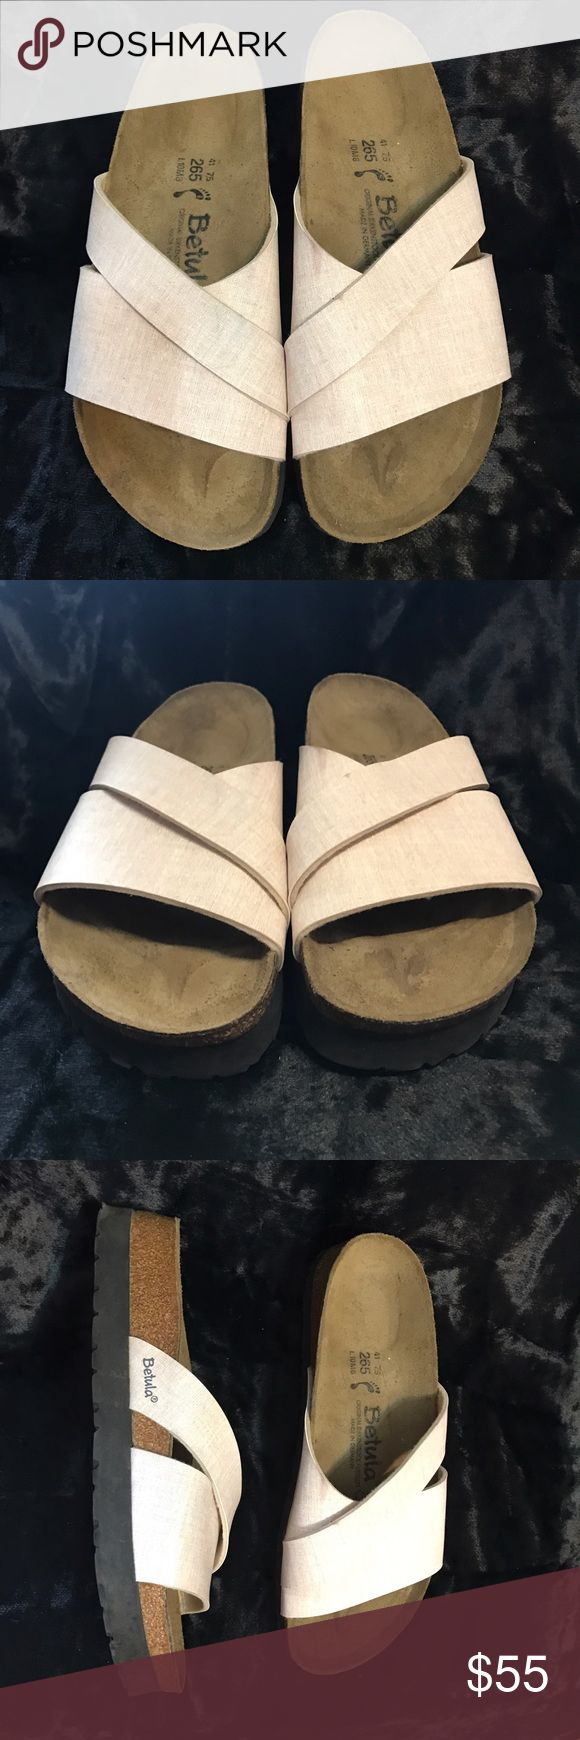 Birkenstock's Betula Sandals Betula Sandals made on the original Birkenstock Footbed.  Good preowned condition with footbed darkened  from wear.  Marks of wear on side of upper. Very comfortable. Betula by Birkenstock Shoes Sandals